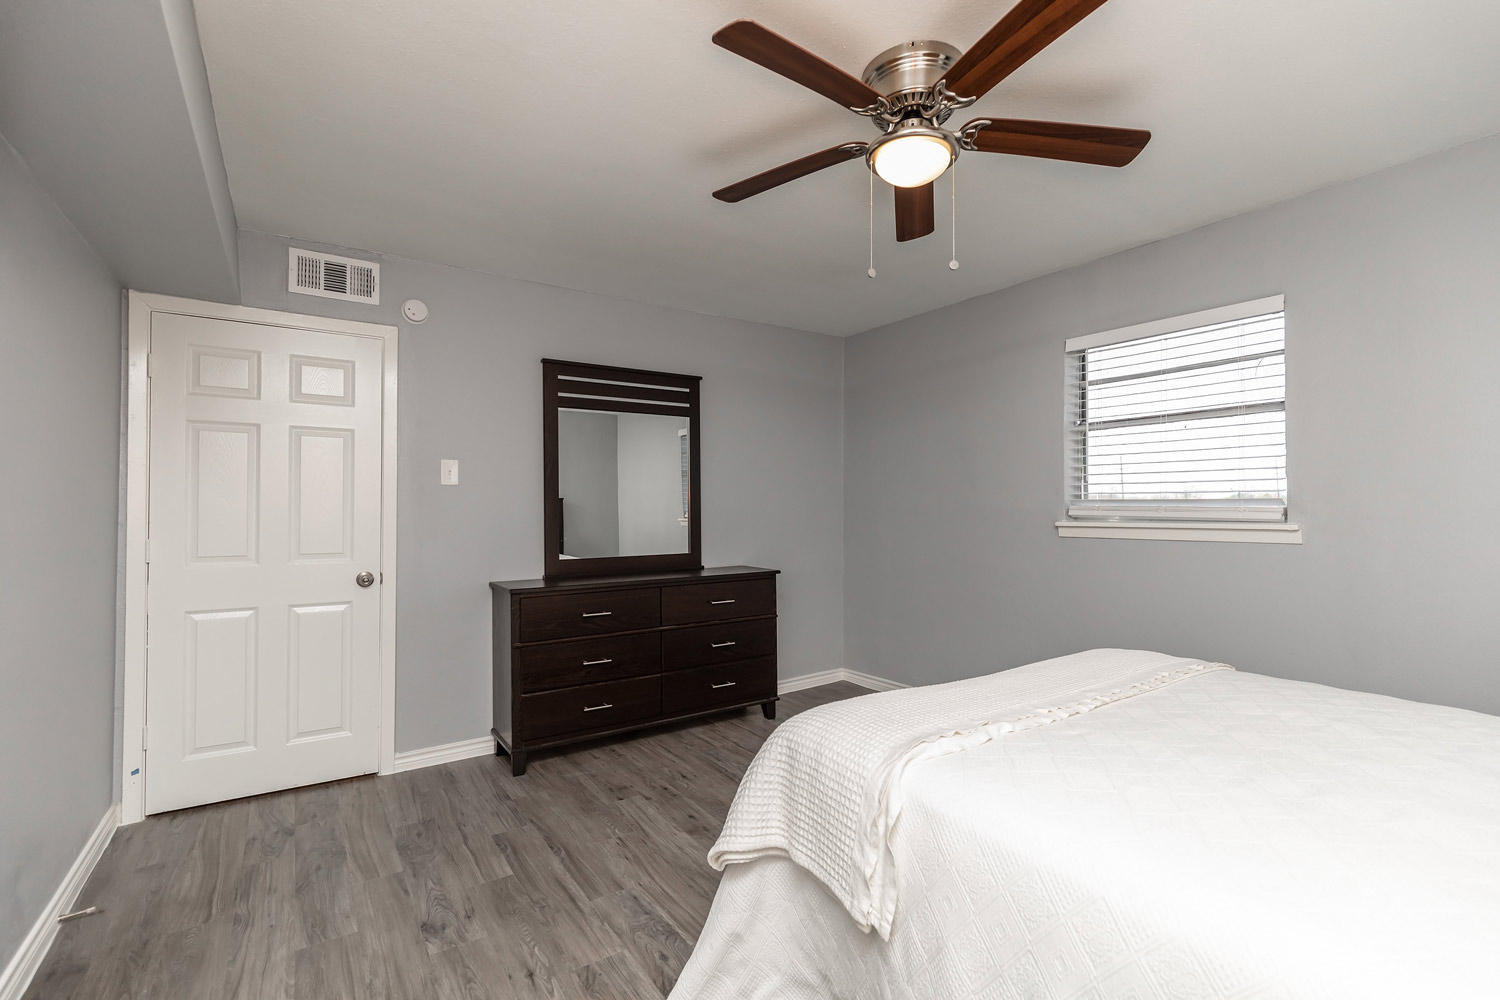 Bedroom with Cabinet at The Five Points at Texas Apartments in Texas City, Texas